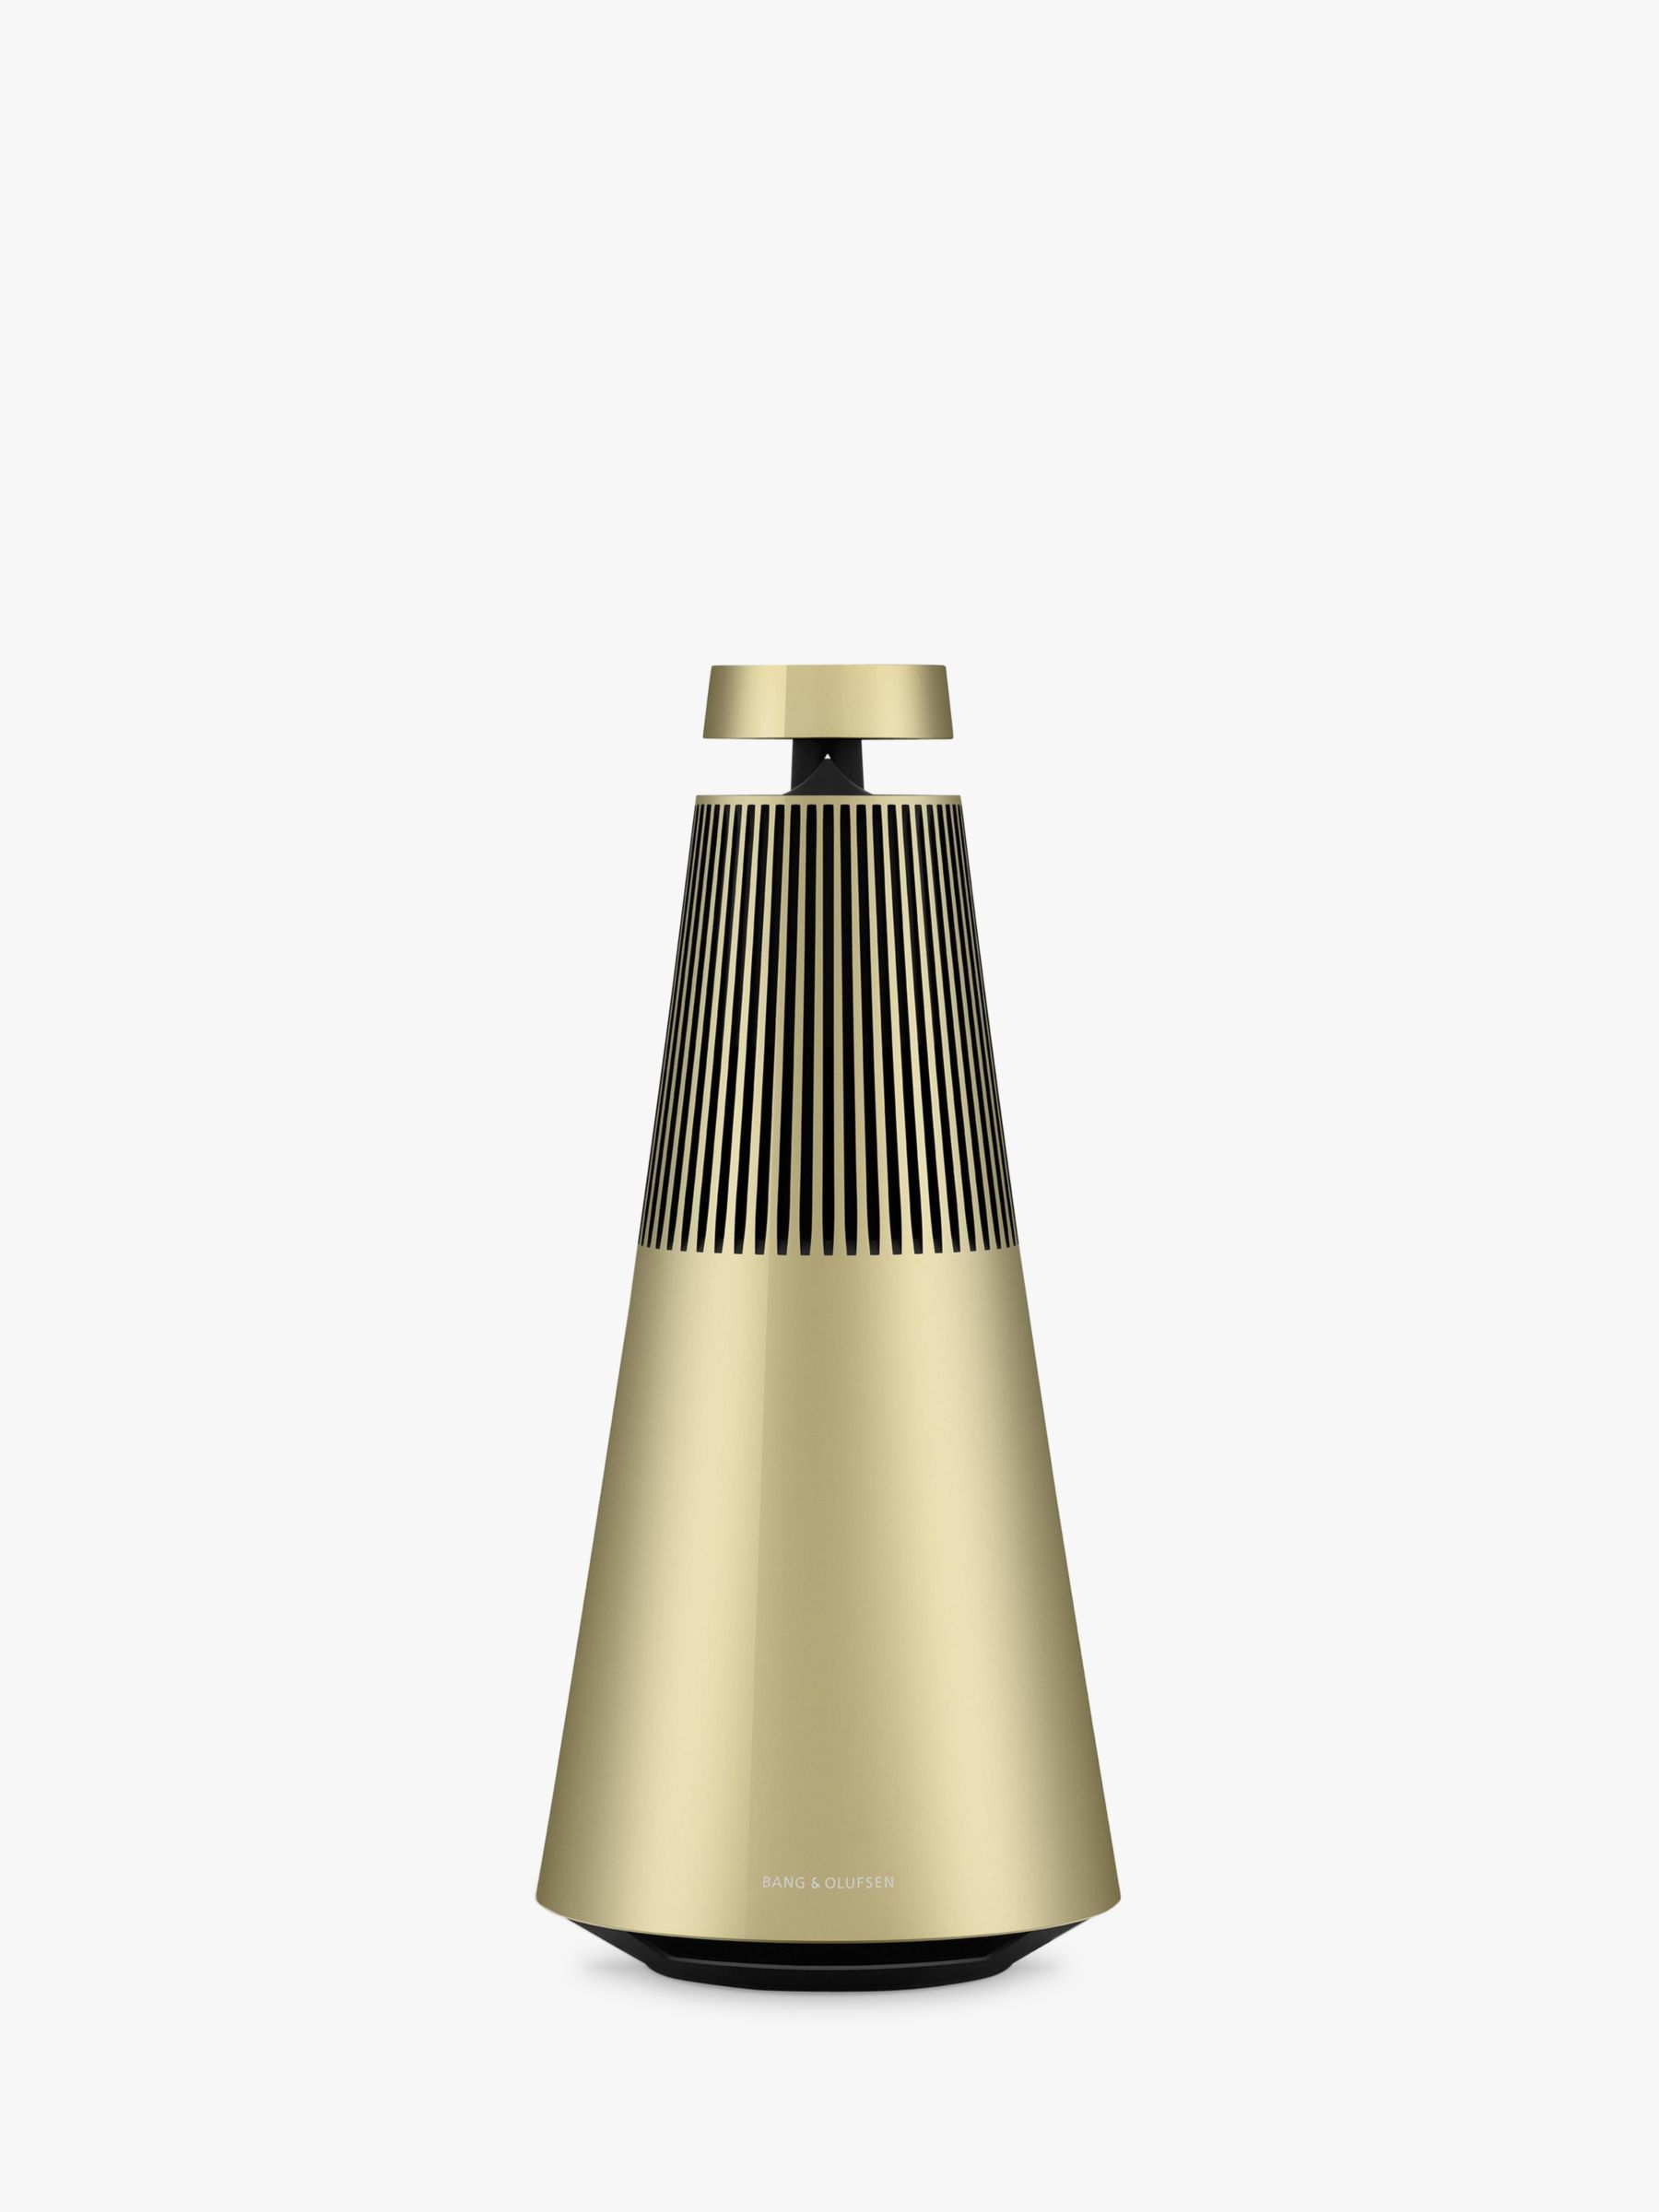 Buy Bang & Olufsen BeoSound 2 Smart Speaker with the Google Assistant, Brass Online at johnlewis.com